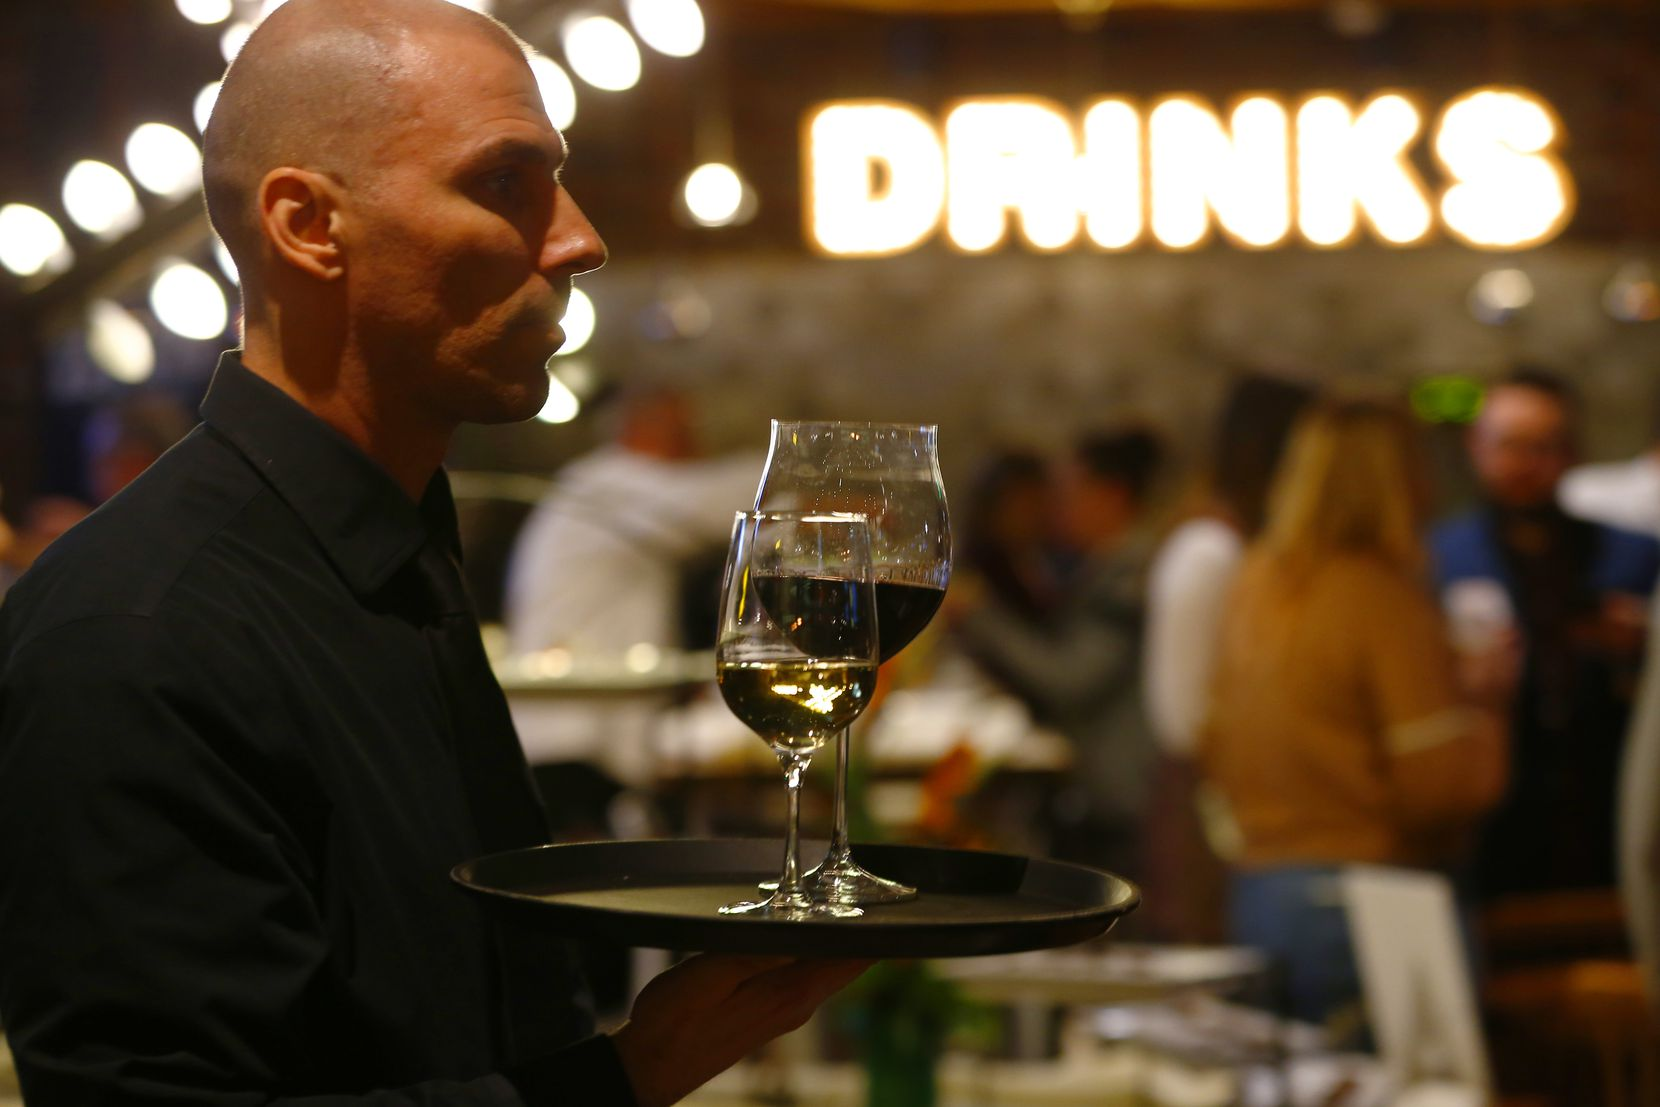 Valerio Dujmovic serves wine at a remodeled and reopened Cafe Express on McKinney Avenue in Uptown.